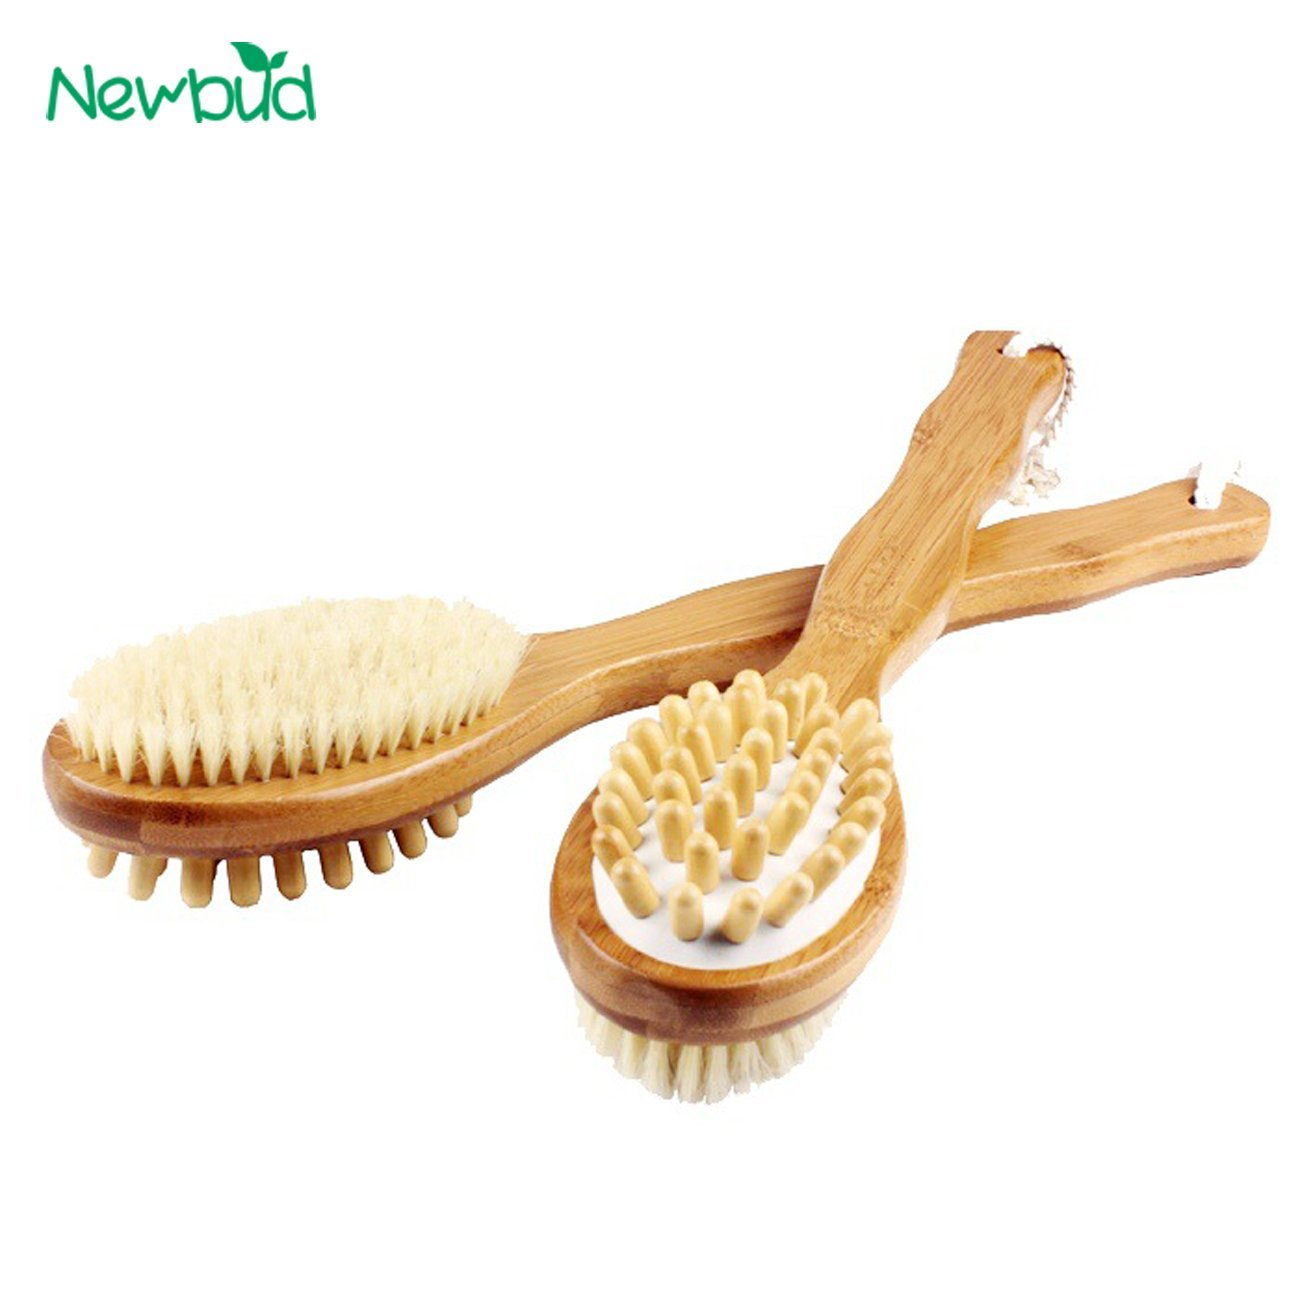 Double Sided Natural Bristles Scrubber Long Handle Wooden Spa Shower Brush Body Bath Shower Brush Massage Brushes - Burlywood